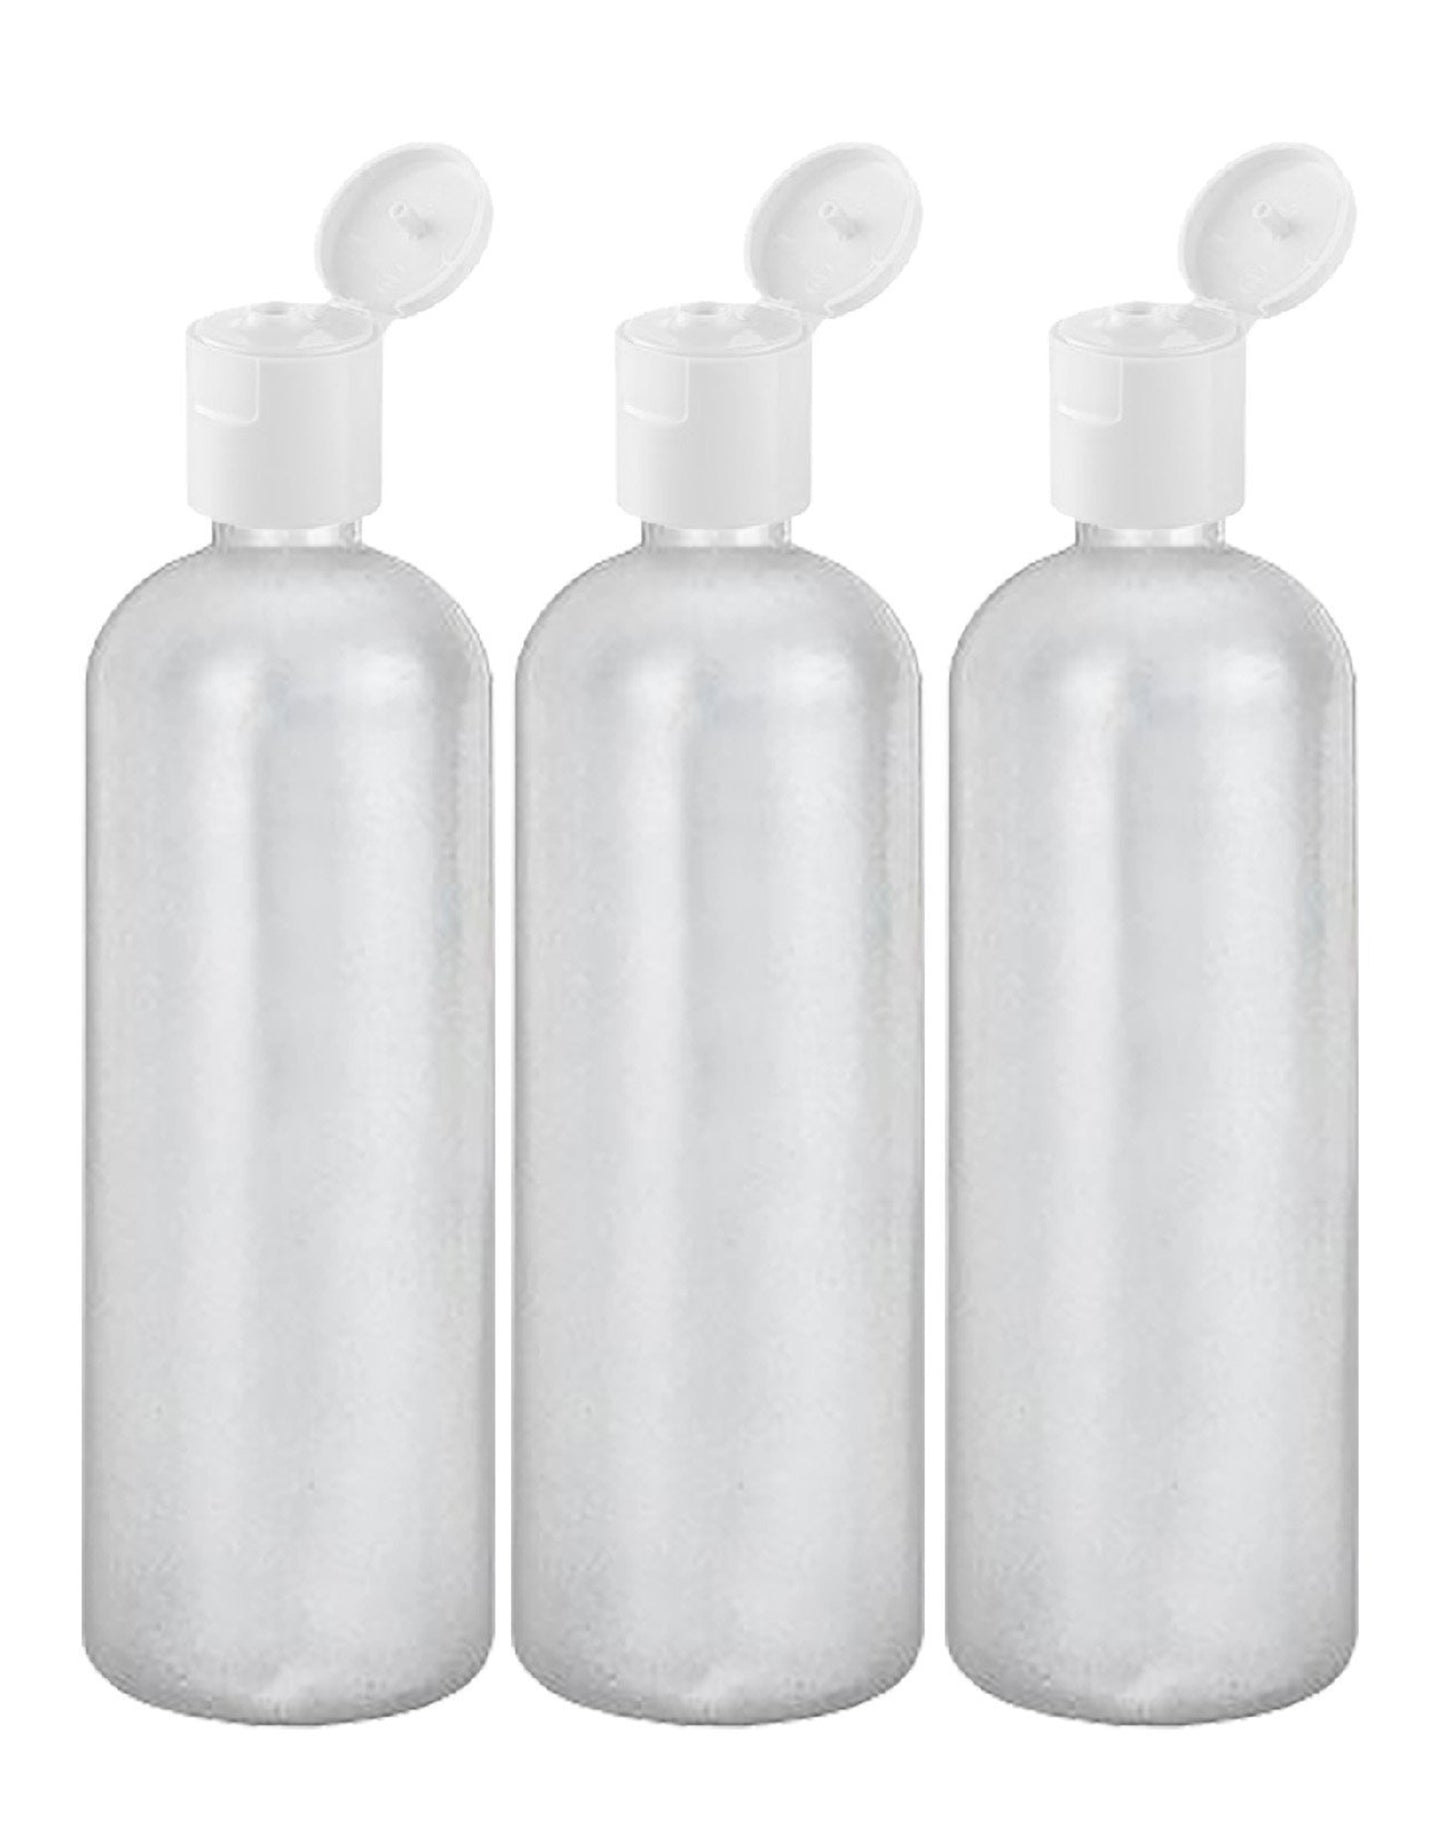 MoYo Natural Labs 32 oz Refillable Bottles, Empty Travel Containers with Flip Caps, BPA Free HDPE Plastic Squeezable Toiletry/Cosmetics Bottle (Pack of 3, HDPE Translucent White)